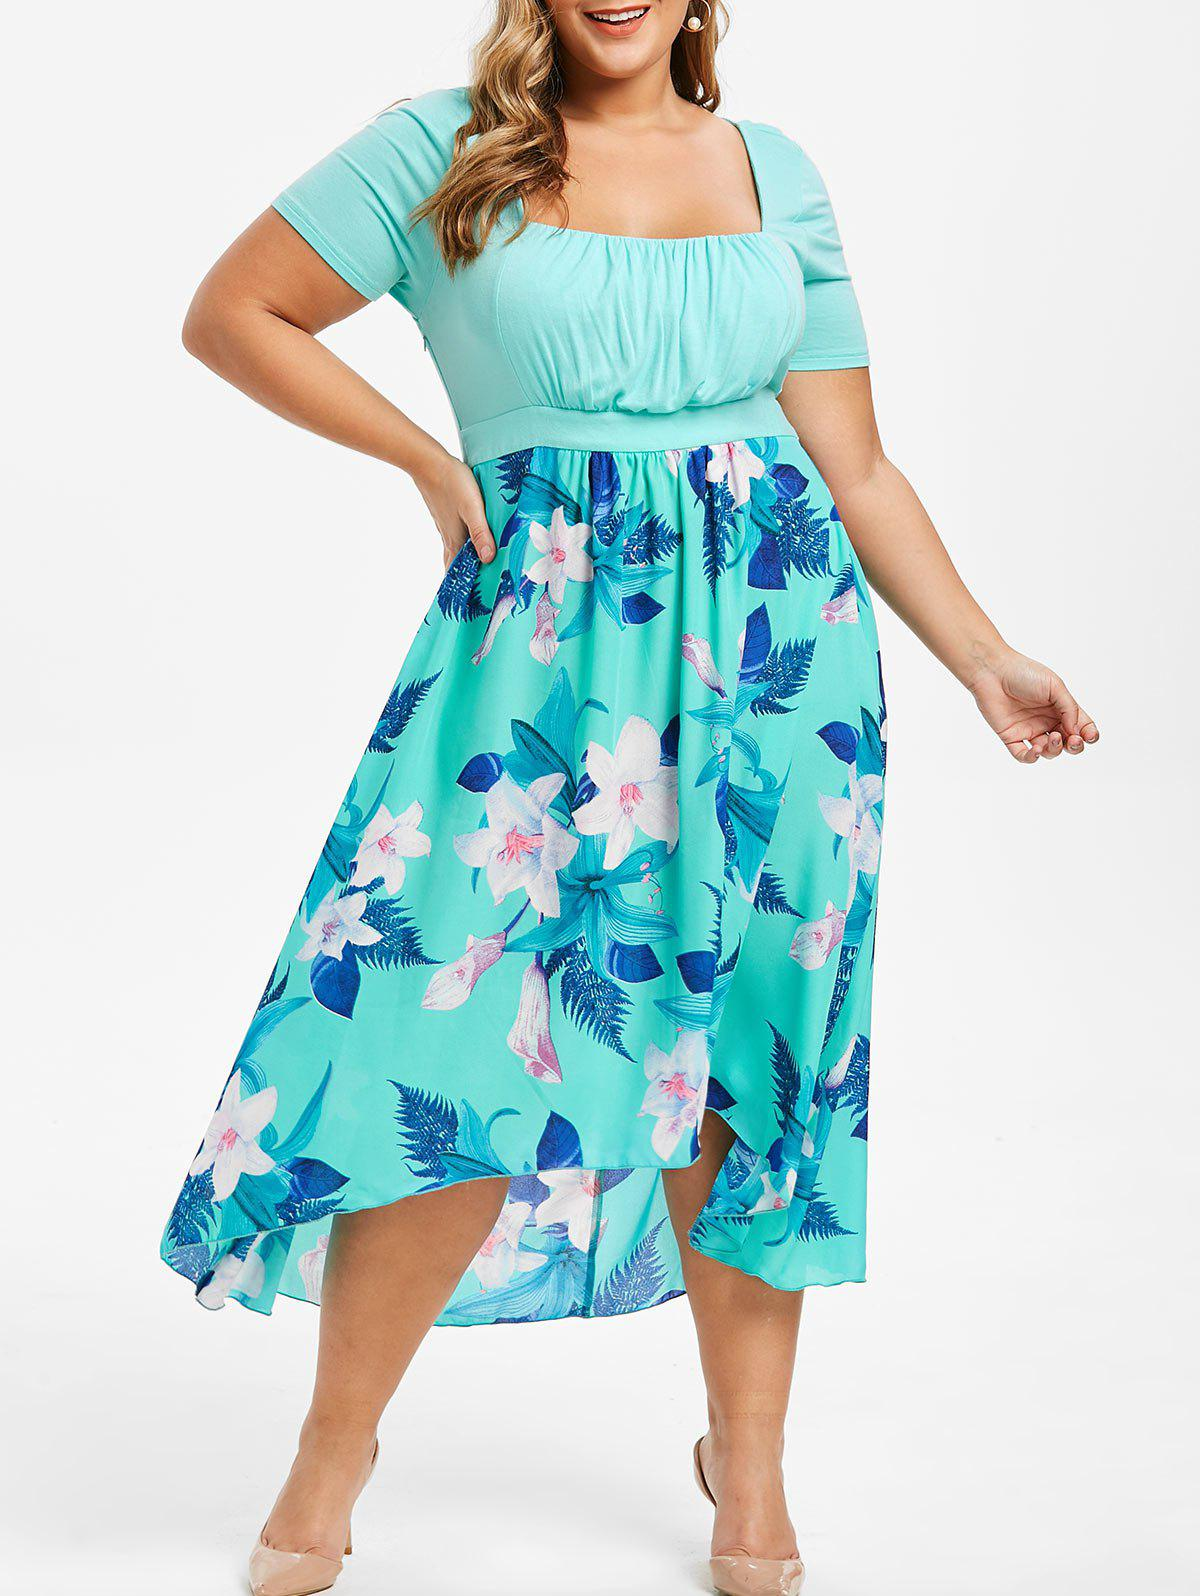 Plus Size Bohemian High Low Floral Maxi Dress, Medium turquoise